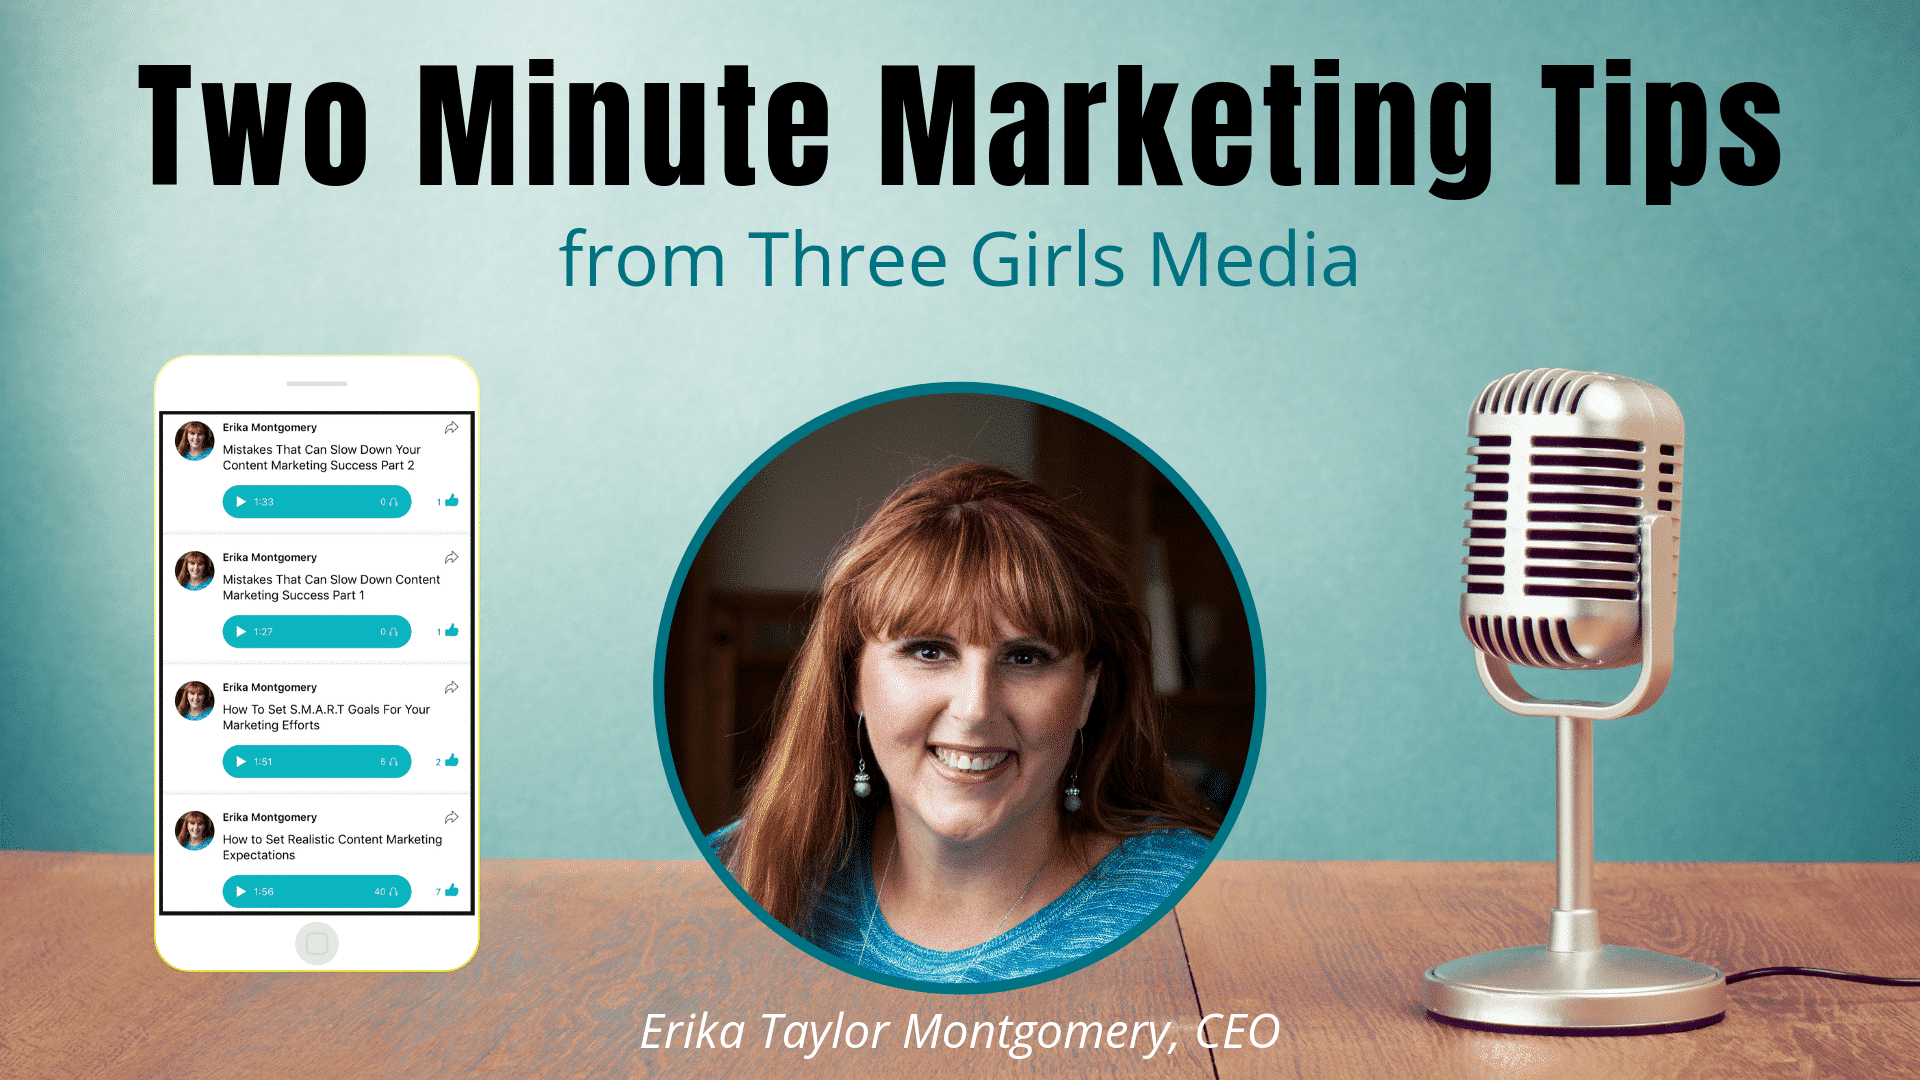 Two Minute Marketing Tips: 6 Things To Know When Hiring A Public Relations Agency